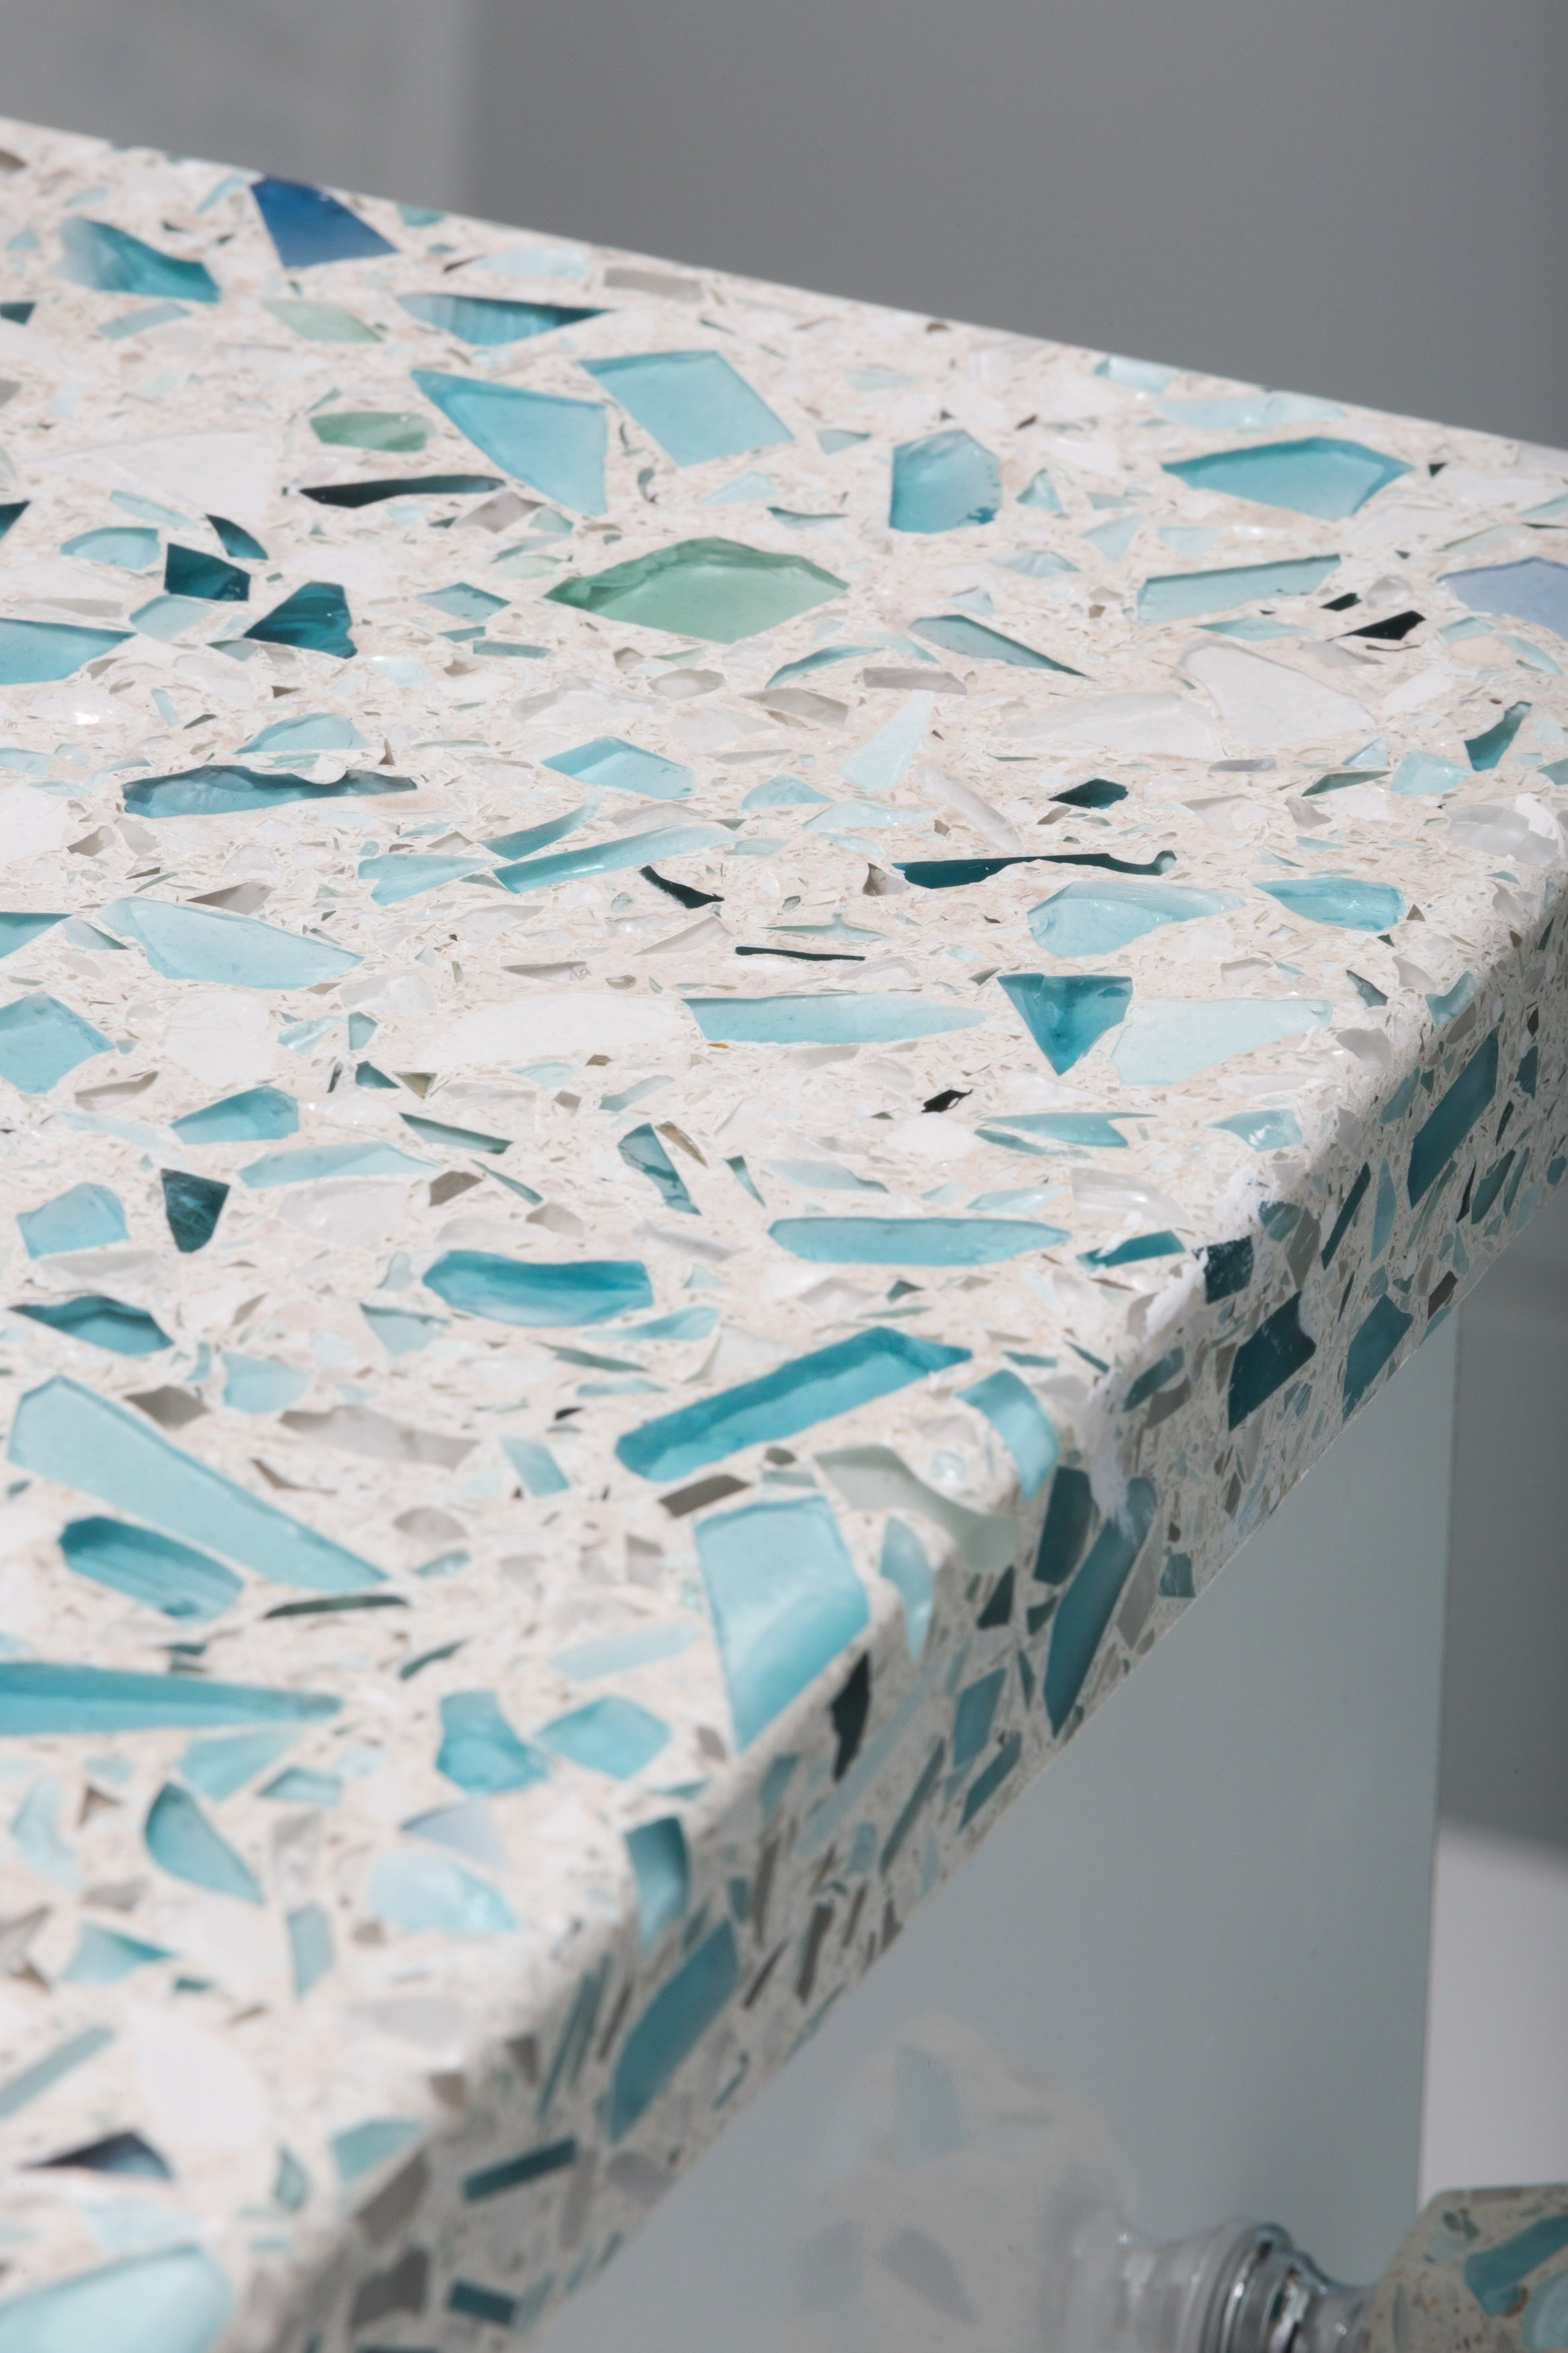 floating-blue-sea-pearl-finish-recycled-glass-countertop-vetrazzo